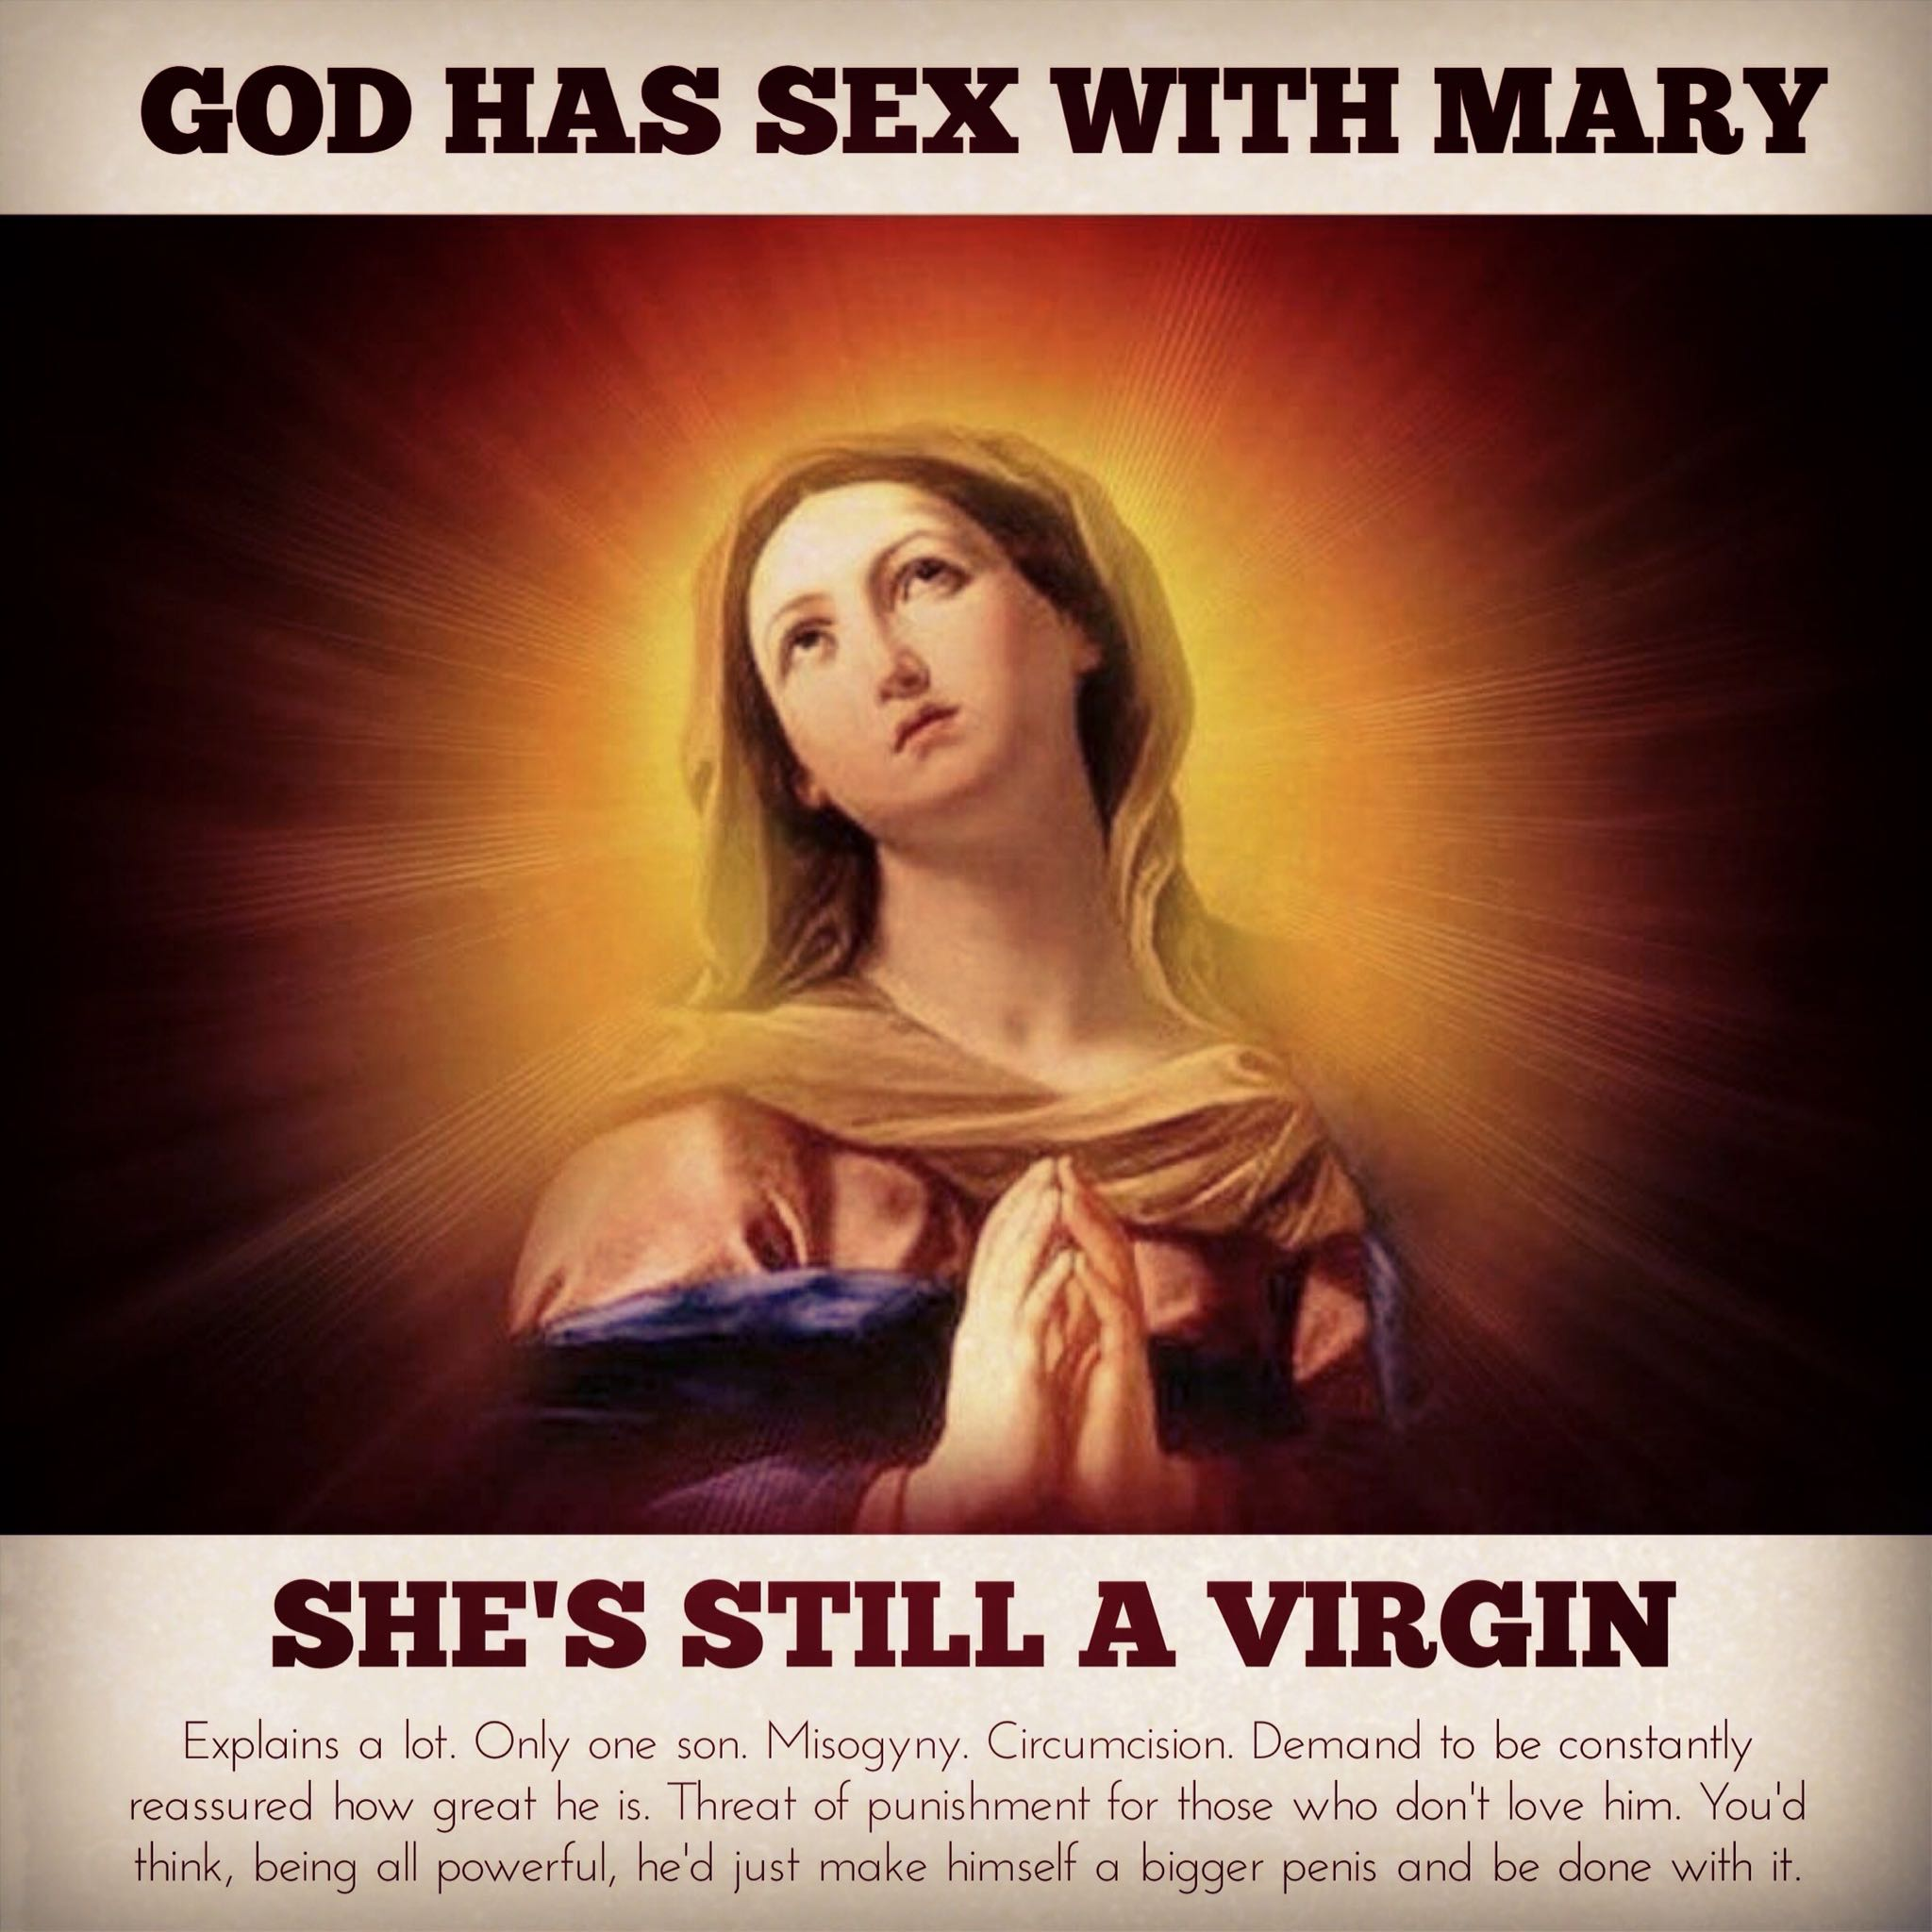 mary is still a virgin